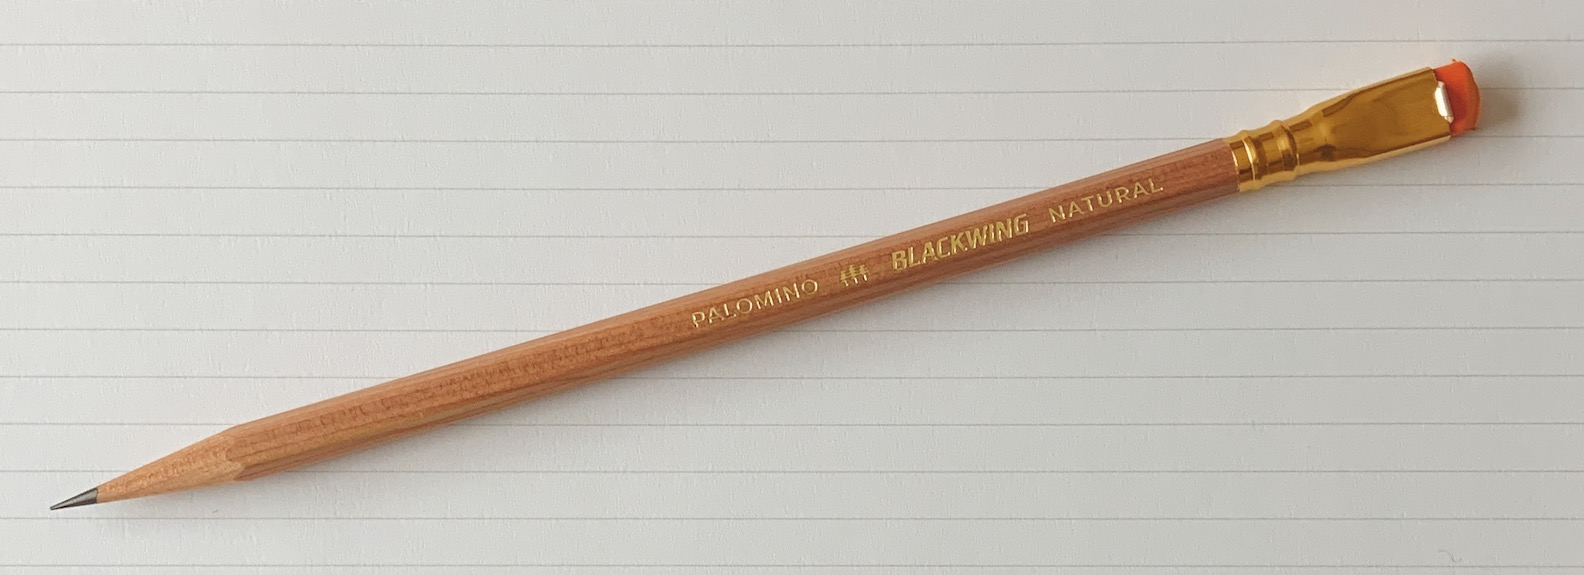 Palomino Blackwing Natural Pencil Review — The Pen Addict